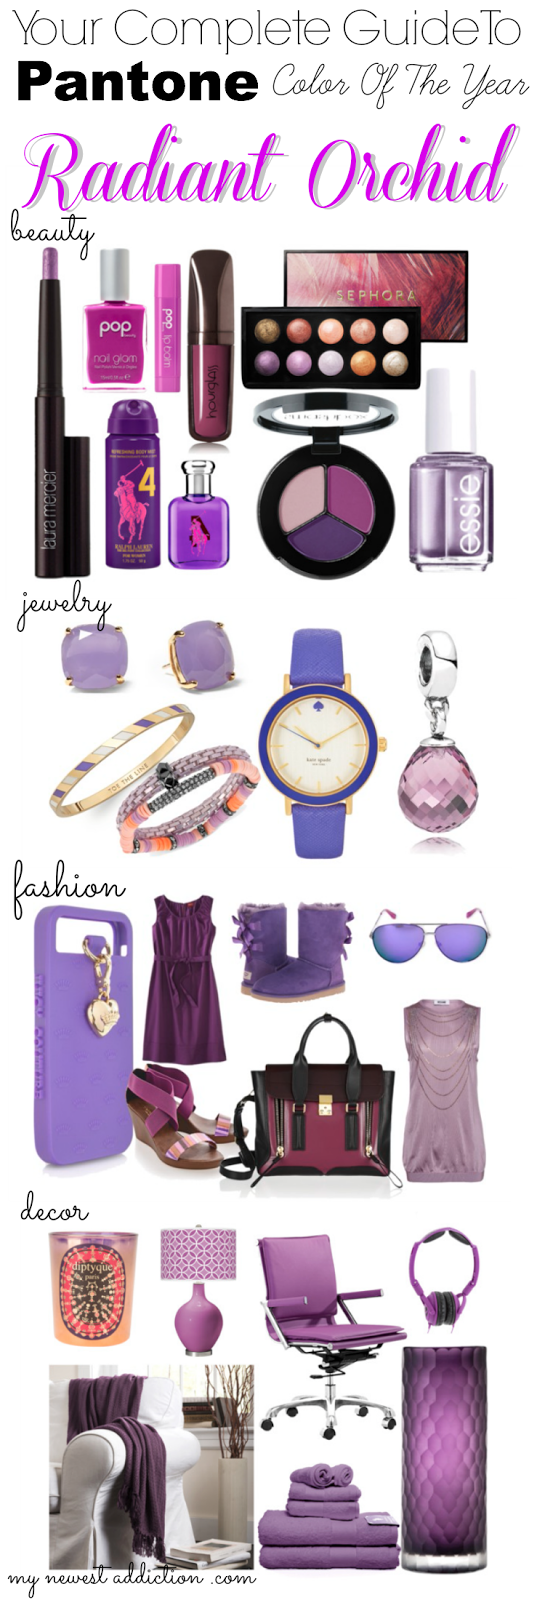 radiant orchid pantone color of the year beauty fashion jewelry home decor purple